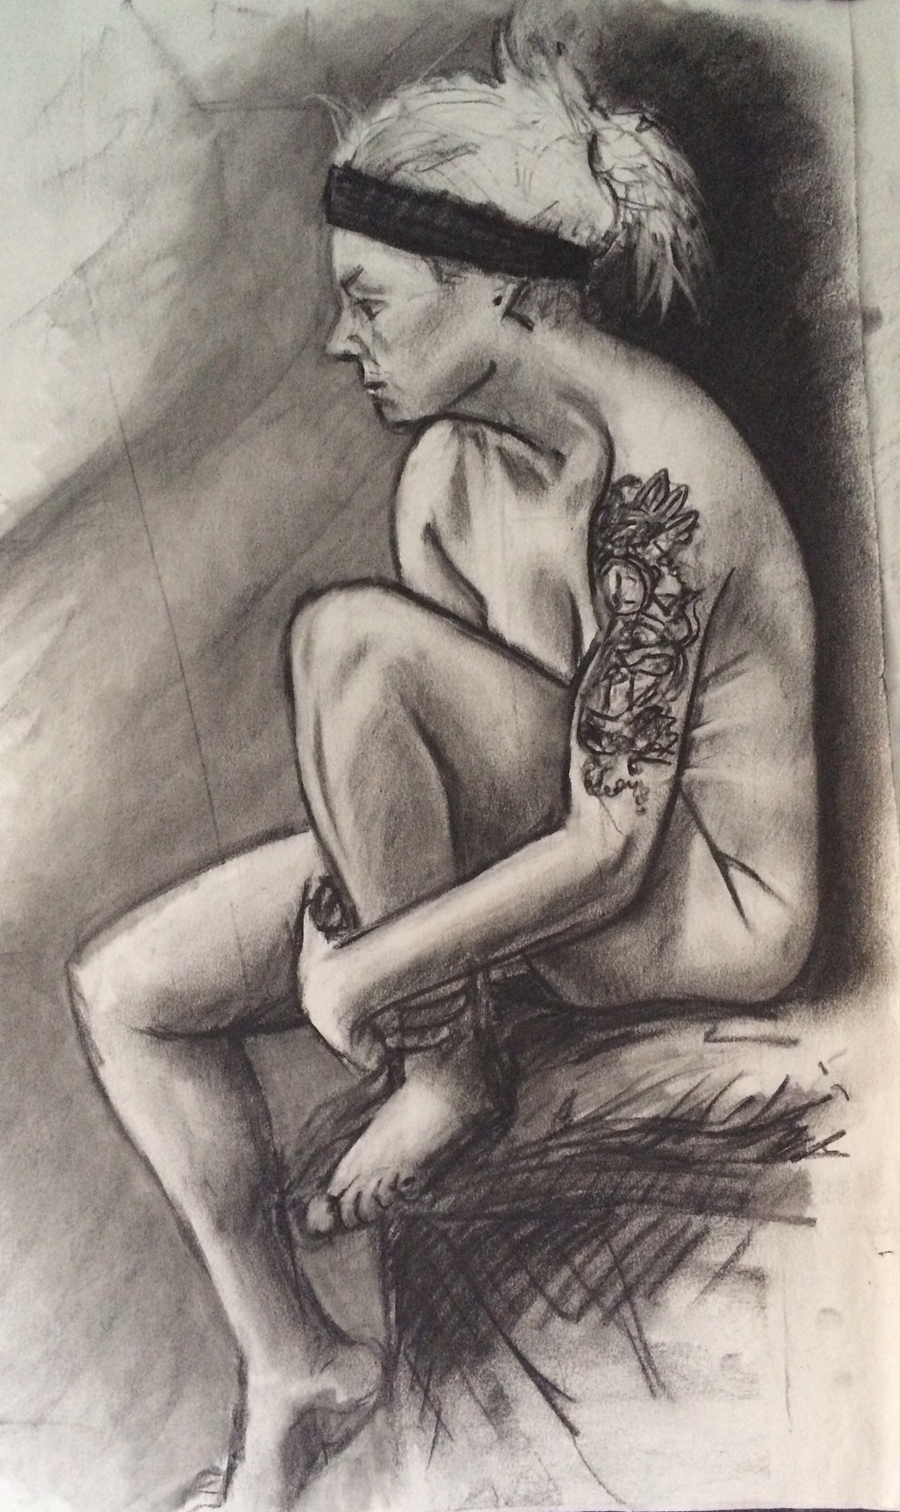 1 hour drawing from life. / Artwork by Ridgmont Life Art / Uploaded 30th January 2016 @ 04:30 PM